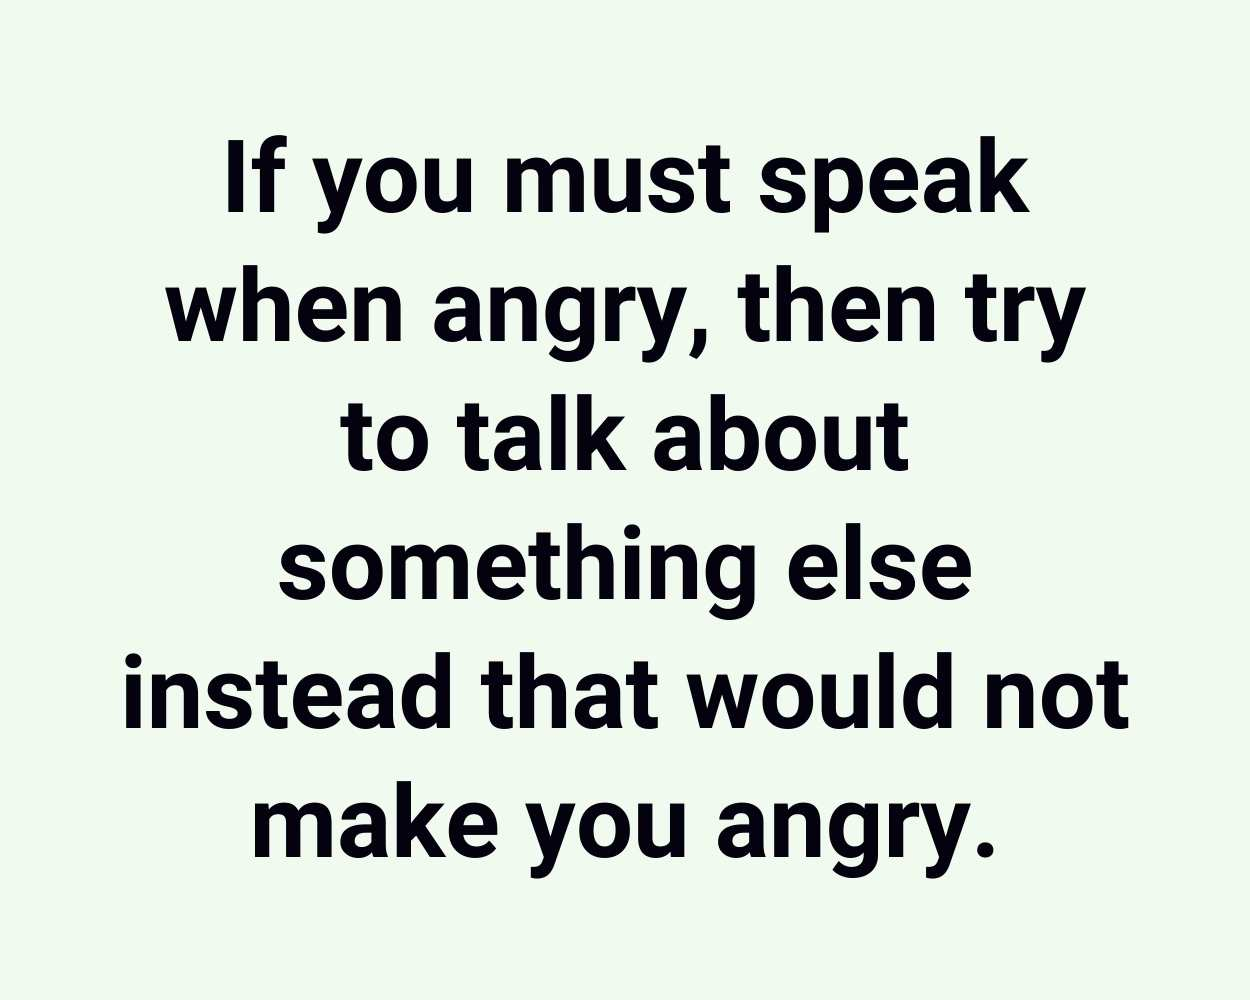 If you must speak when angry, then try to talk about something else instead that would not make you angry.